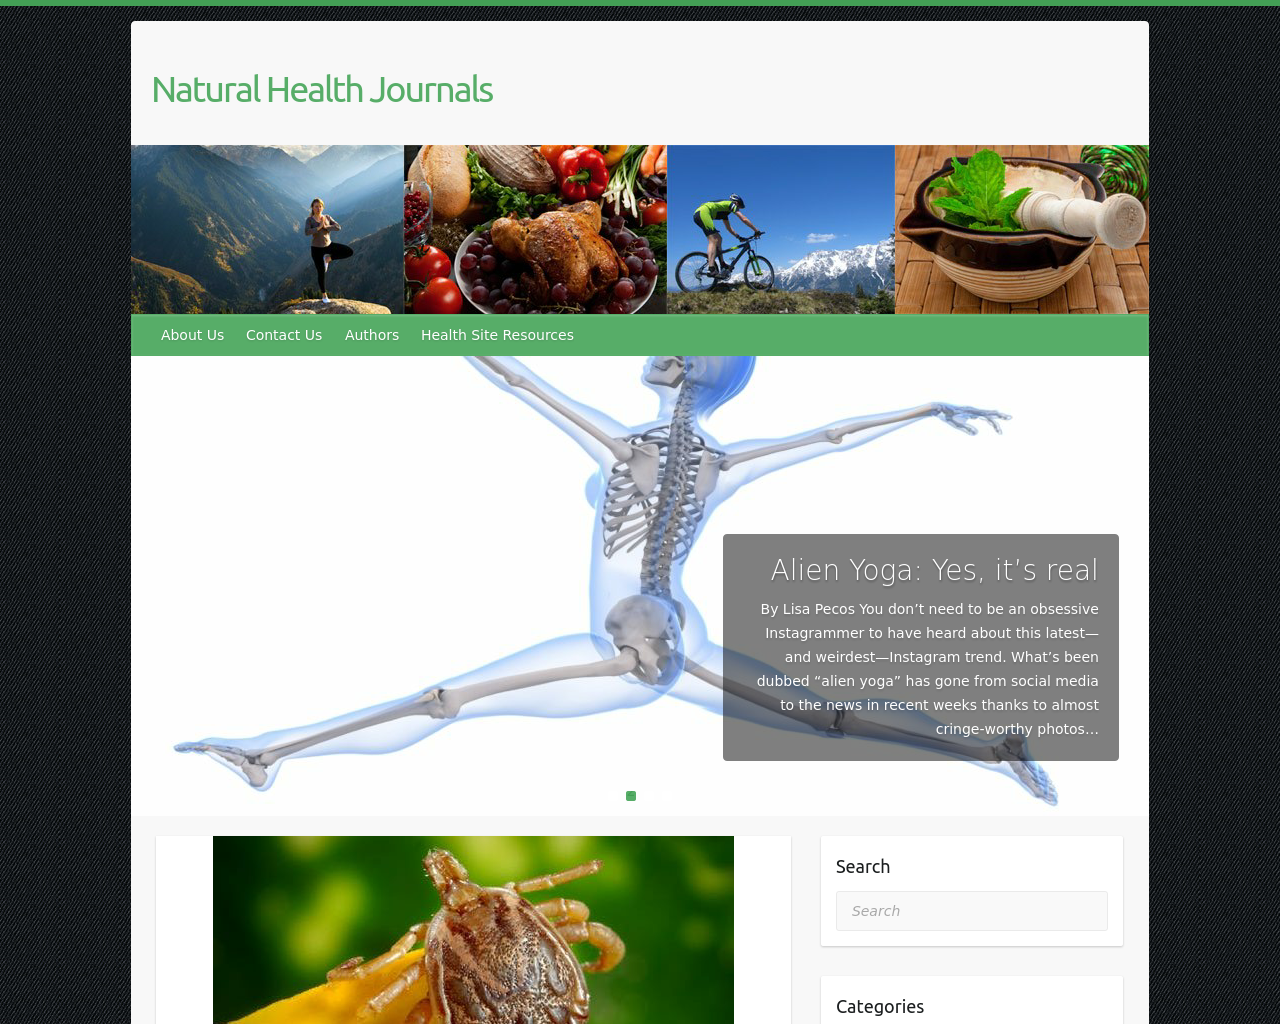 Natural-Health-Journals-Advertising-Reviews-Pricing